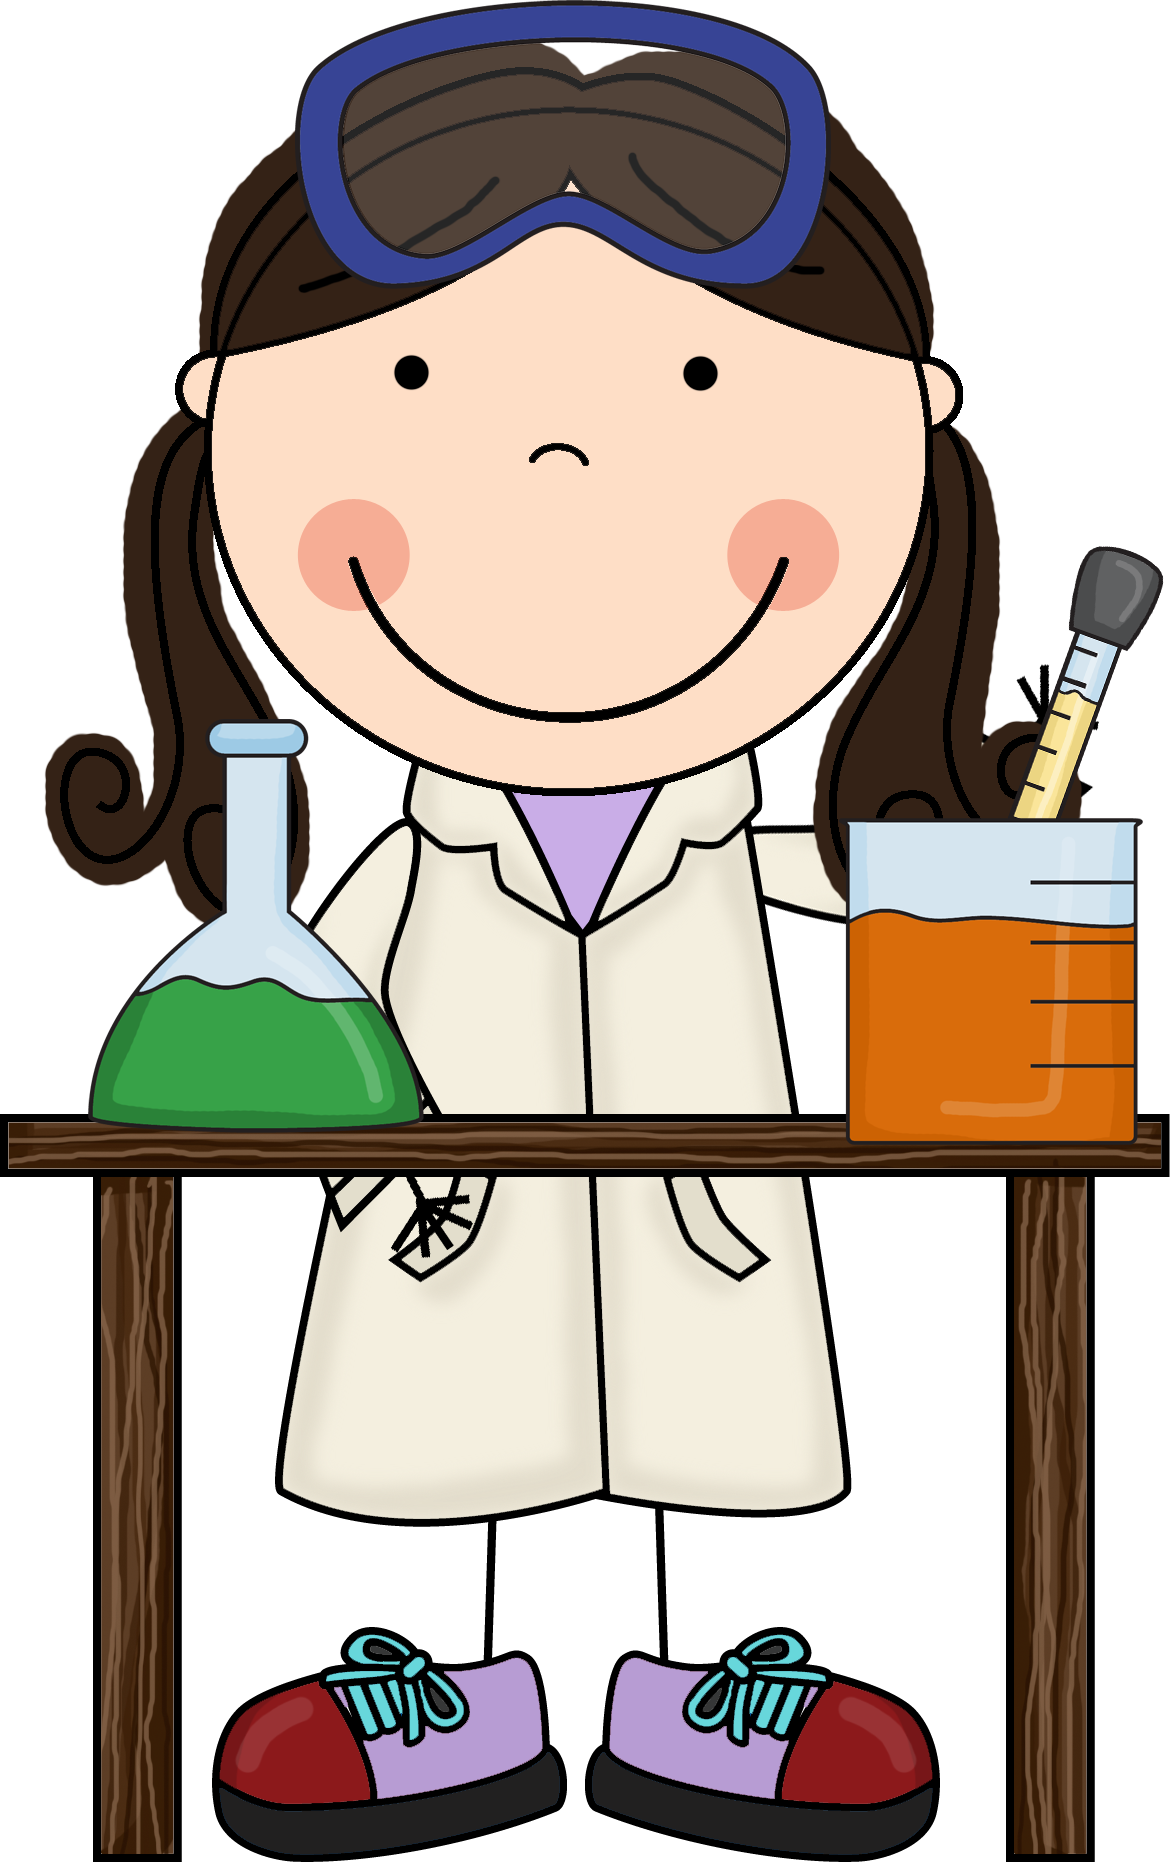 Kindergarten clipart computer. Science free best ciencia